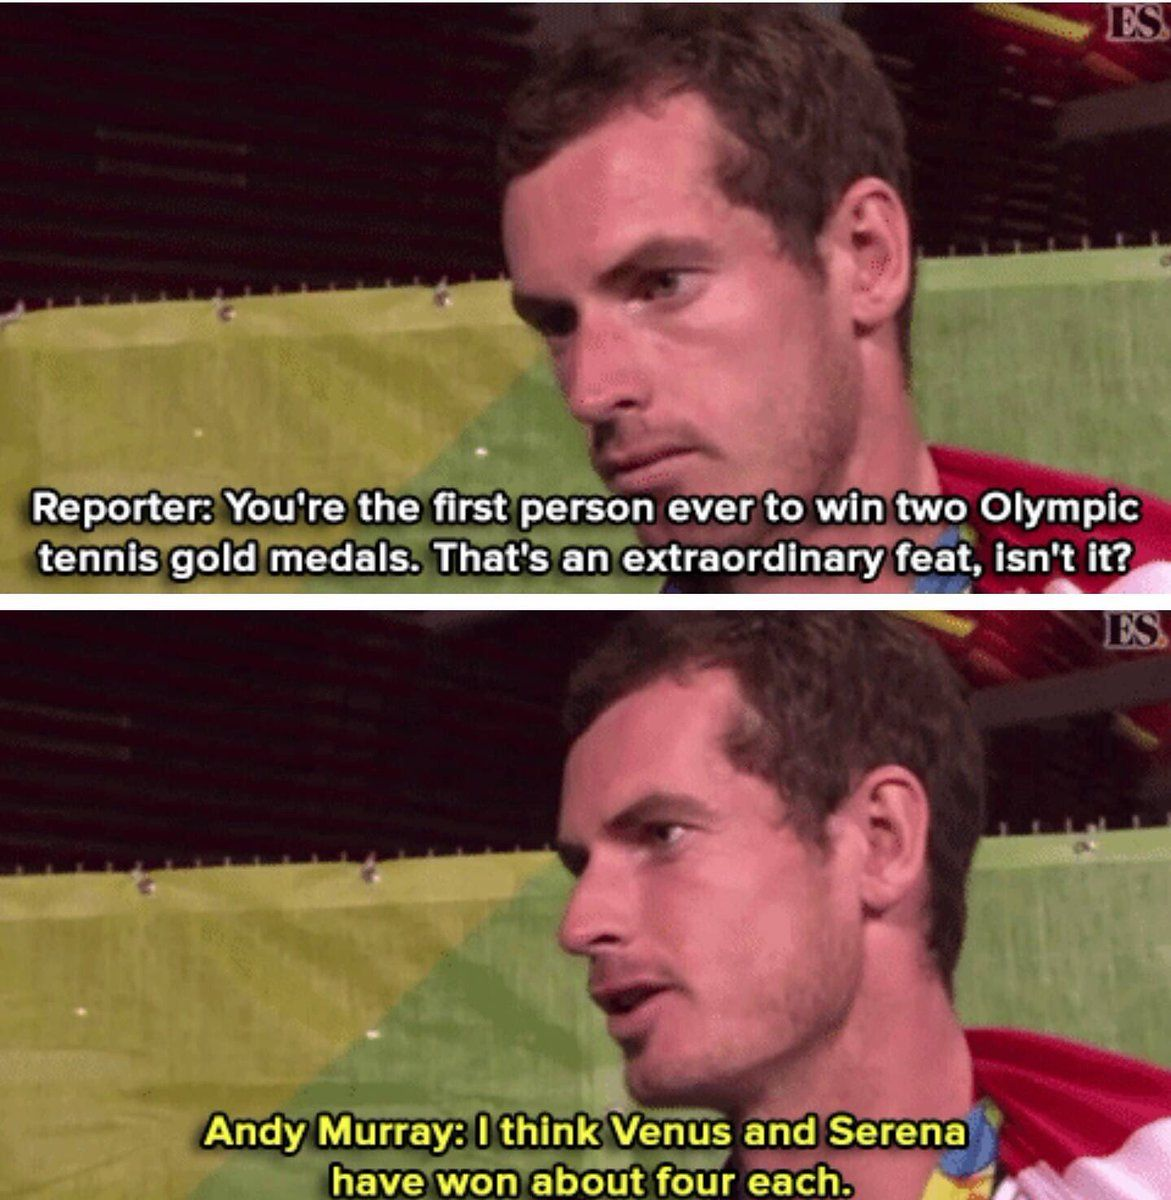 Andy Murray John Inverdale interview